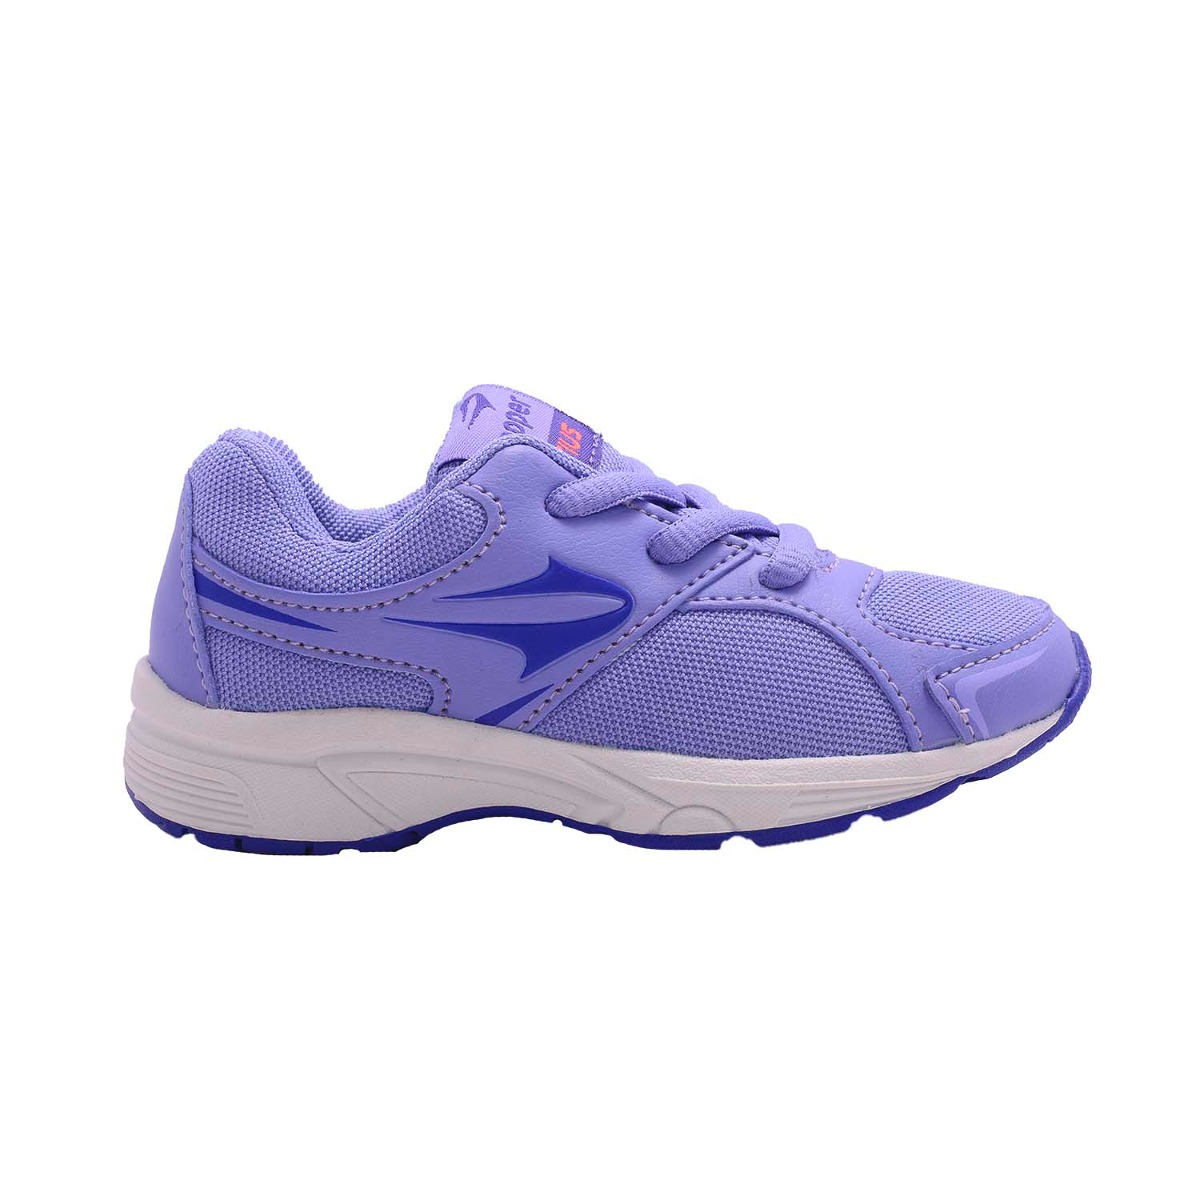 fffed237d zapatillas topper citius bebé-49963- open sports. Cargando zoom.